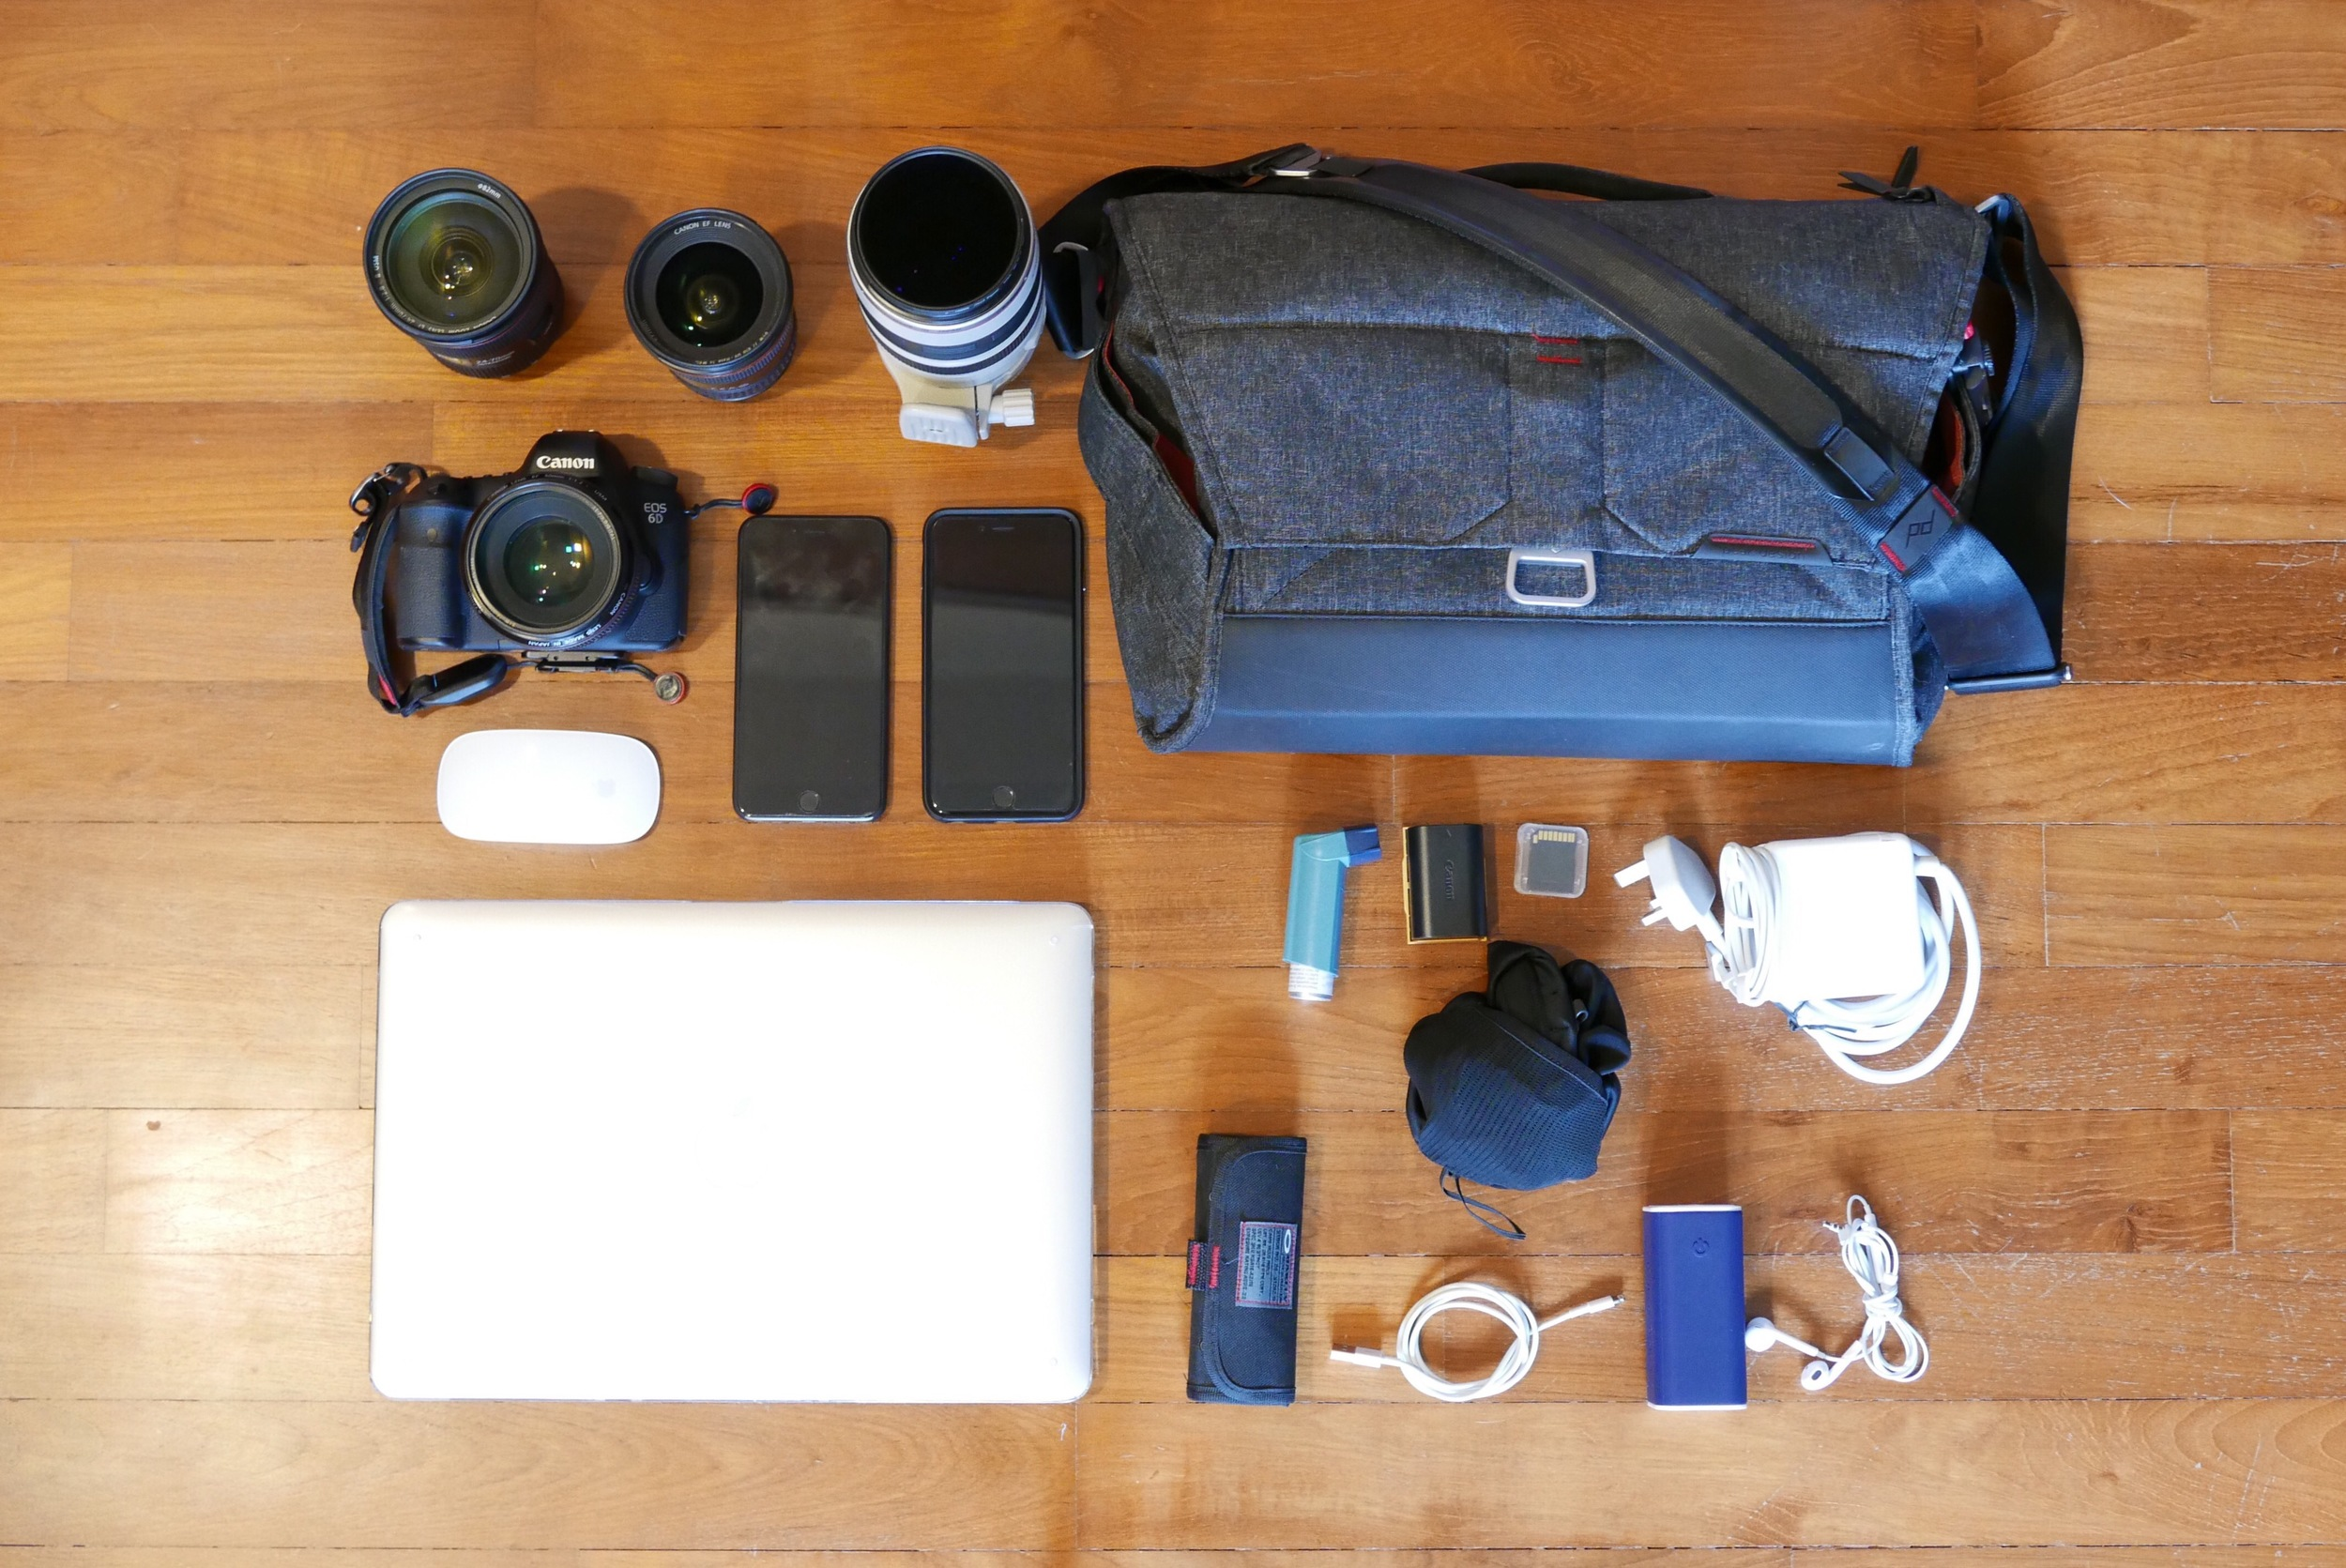 "Canon 6D, 17-40mm F4 L, 24-70mm F2.8 L II, 50mm F1.2 L, 100-400mm F3.5-5.6 L, The Everyday Messenger Bag by Peak Design, iPhone 6 Plus & 6s Plus, 15"" MacBook Pro Retina and various little knick knacks..."